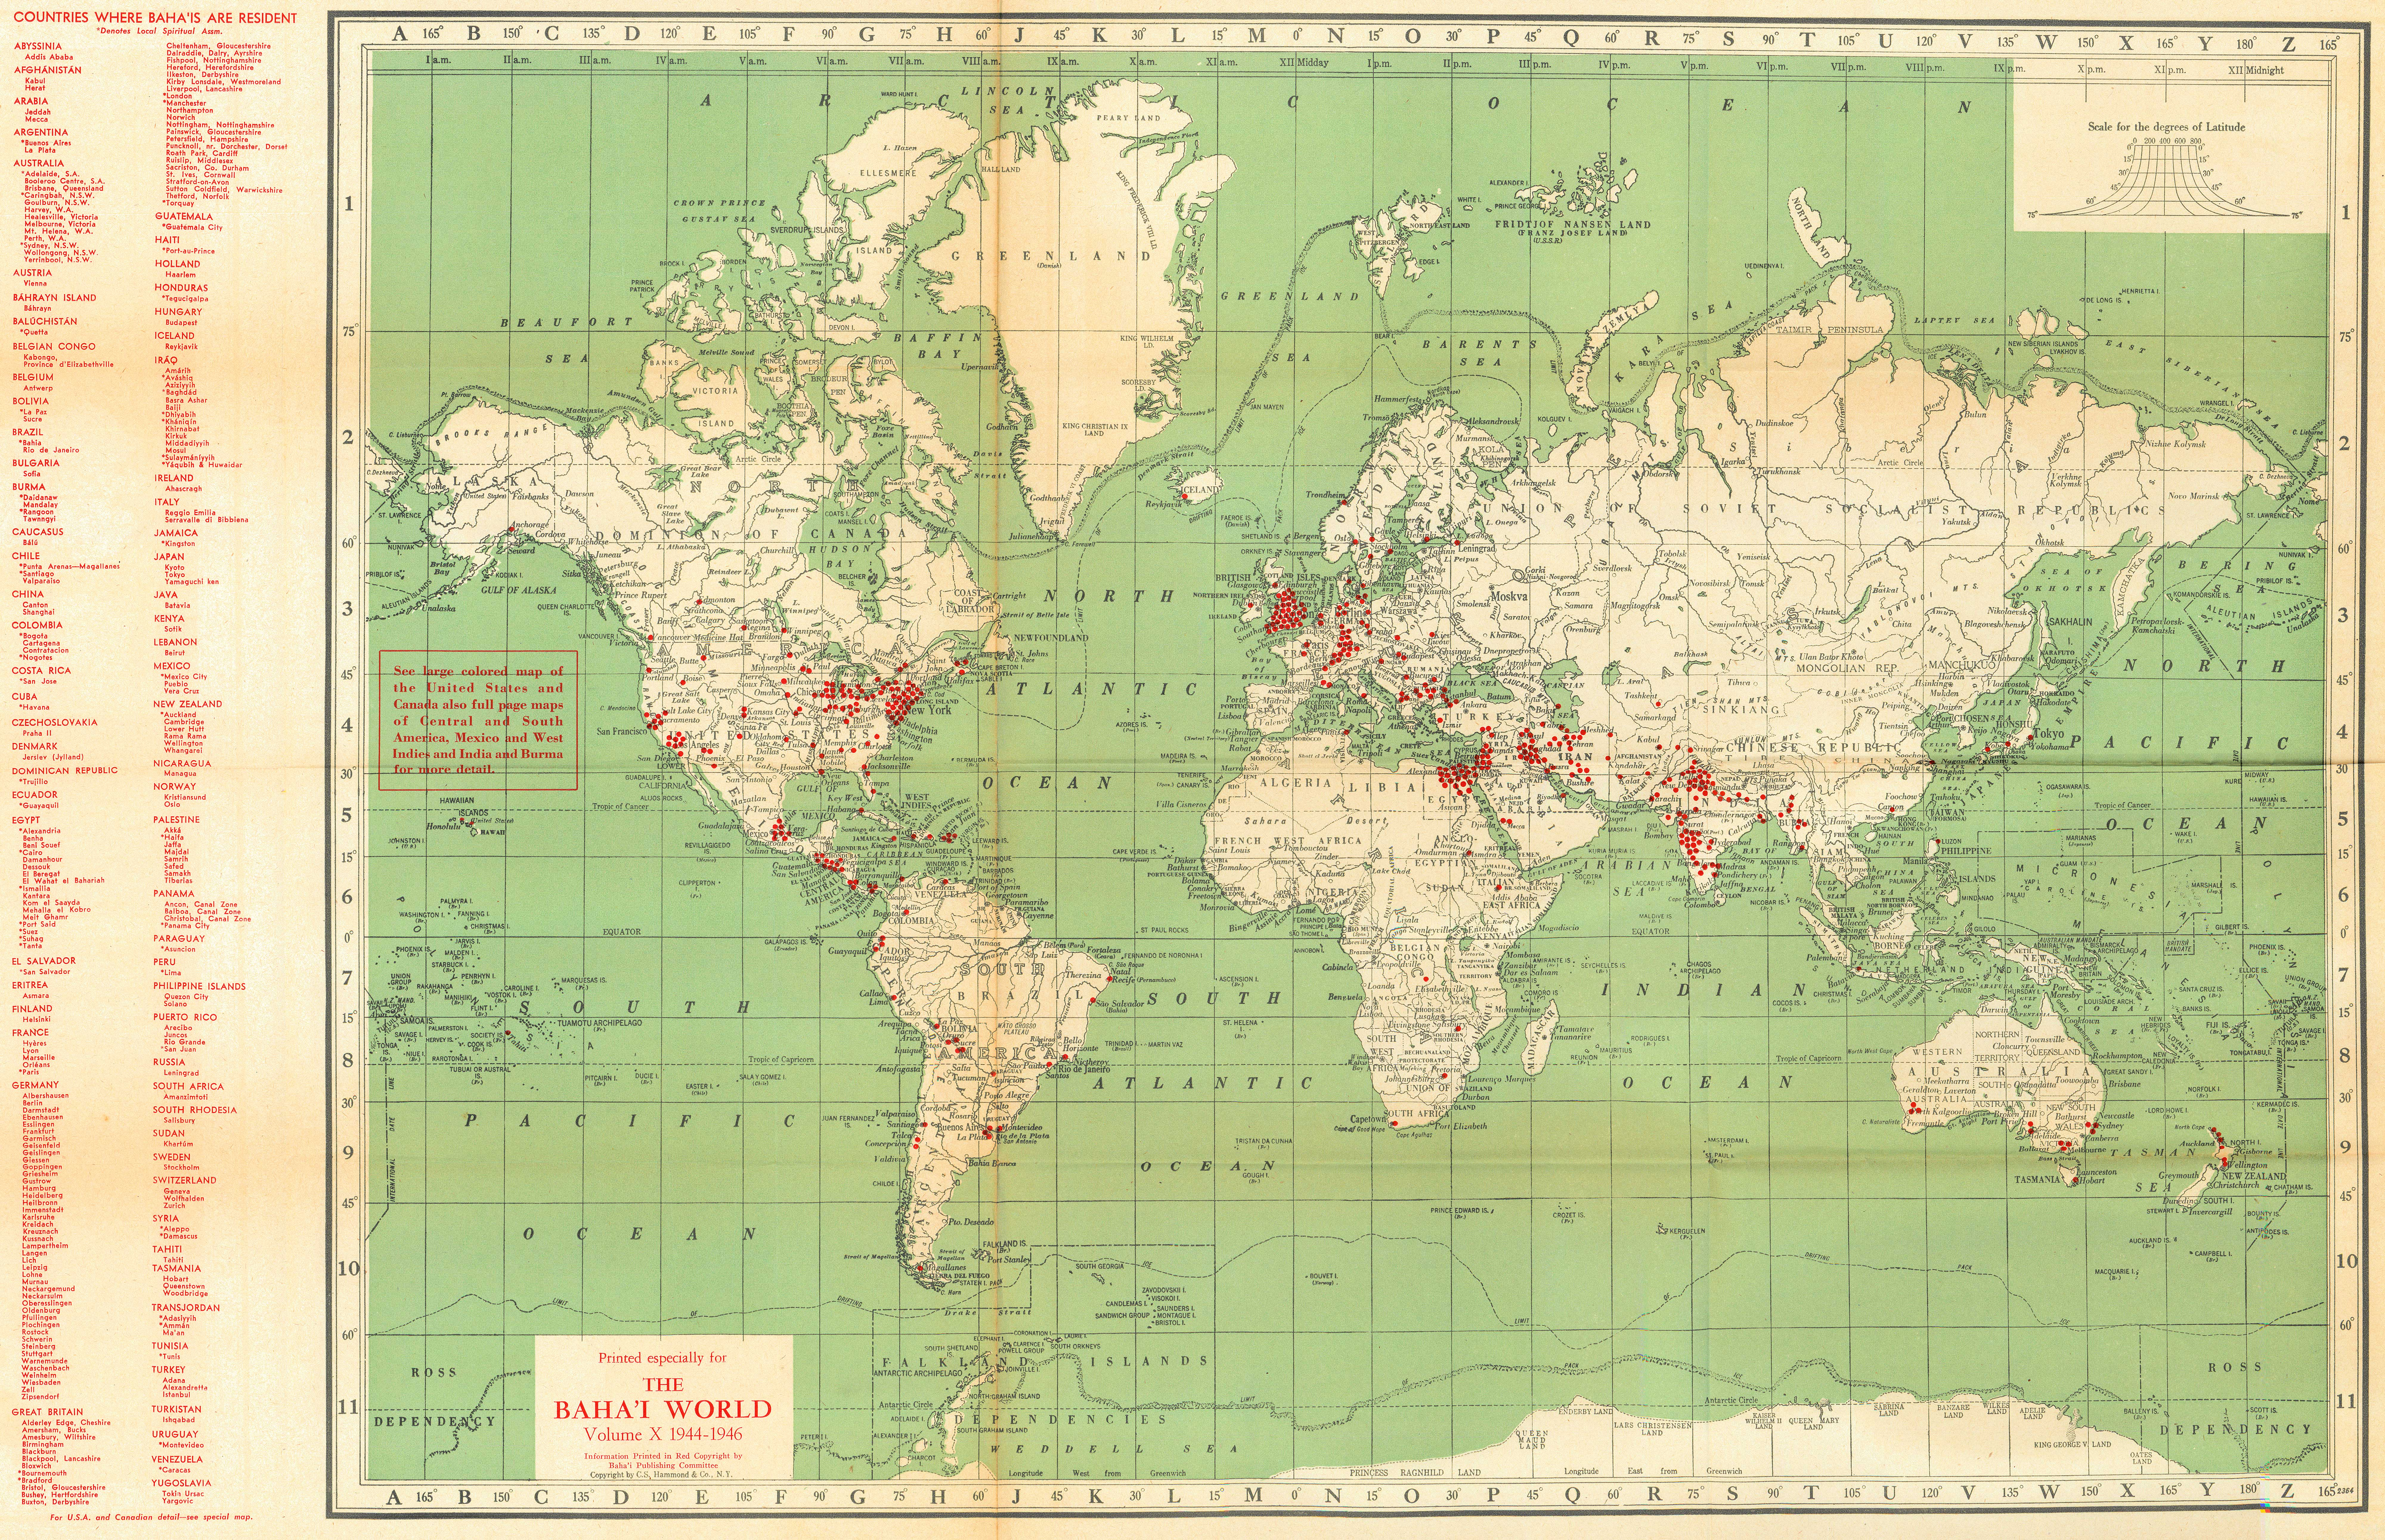 Localities where bahs live world 1944 big 8000x5166 px 65mb bw10map1localitiesworld1944bigg gumiabroncs Image collections